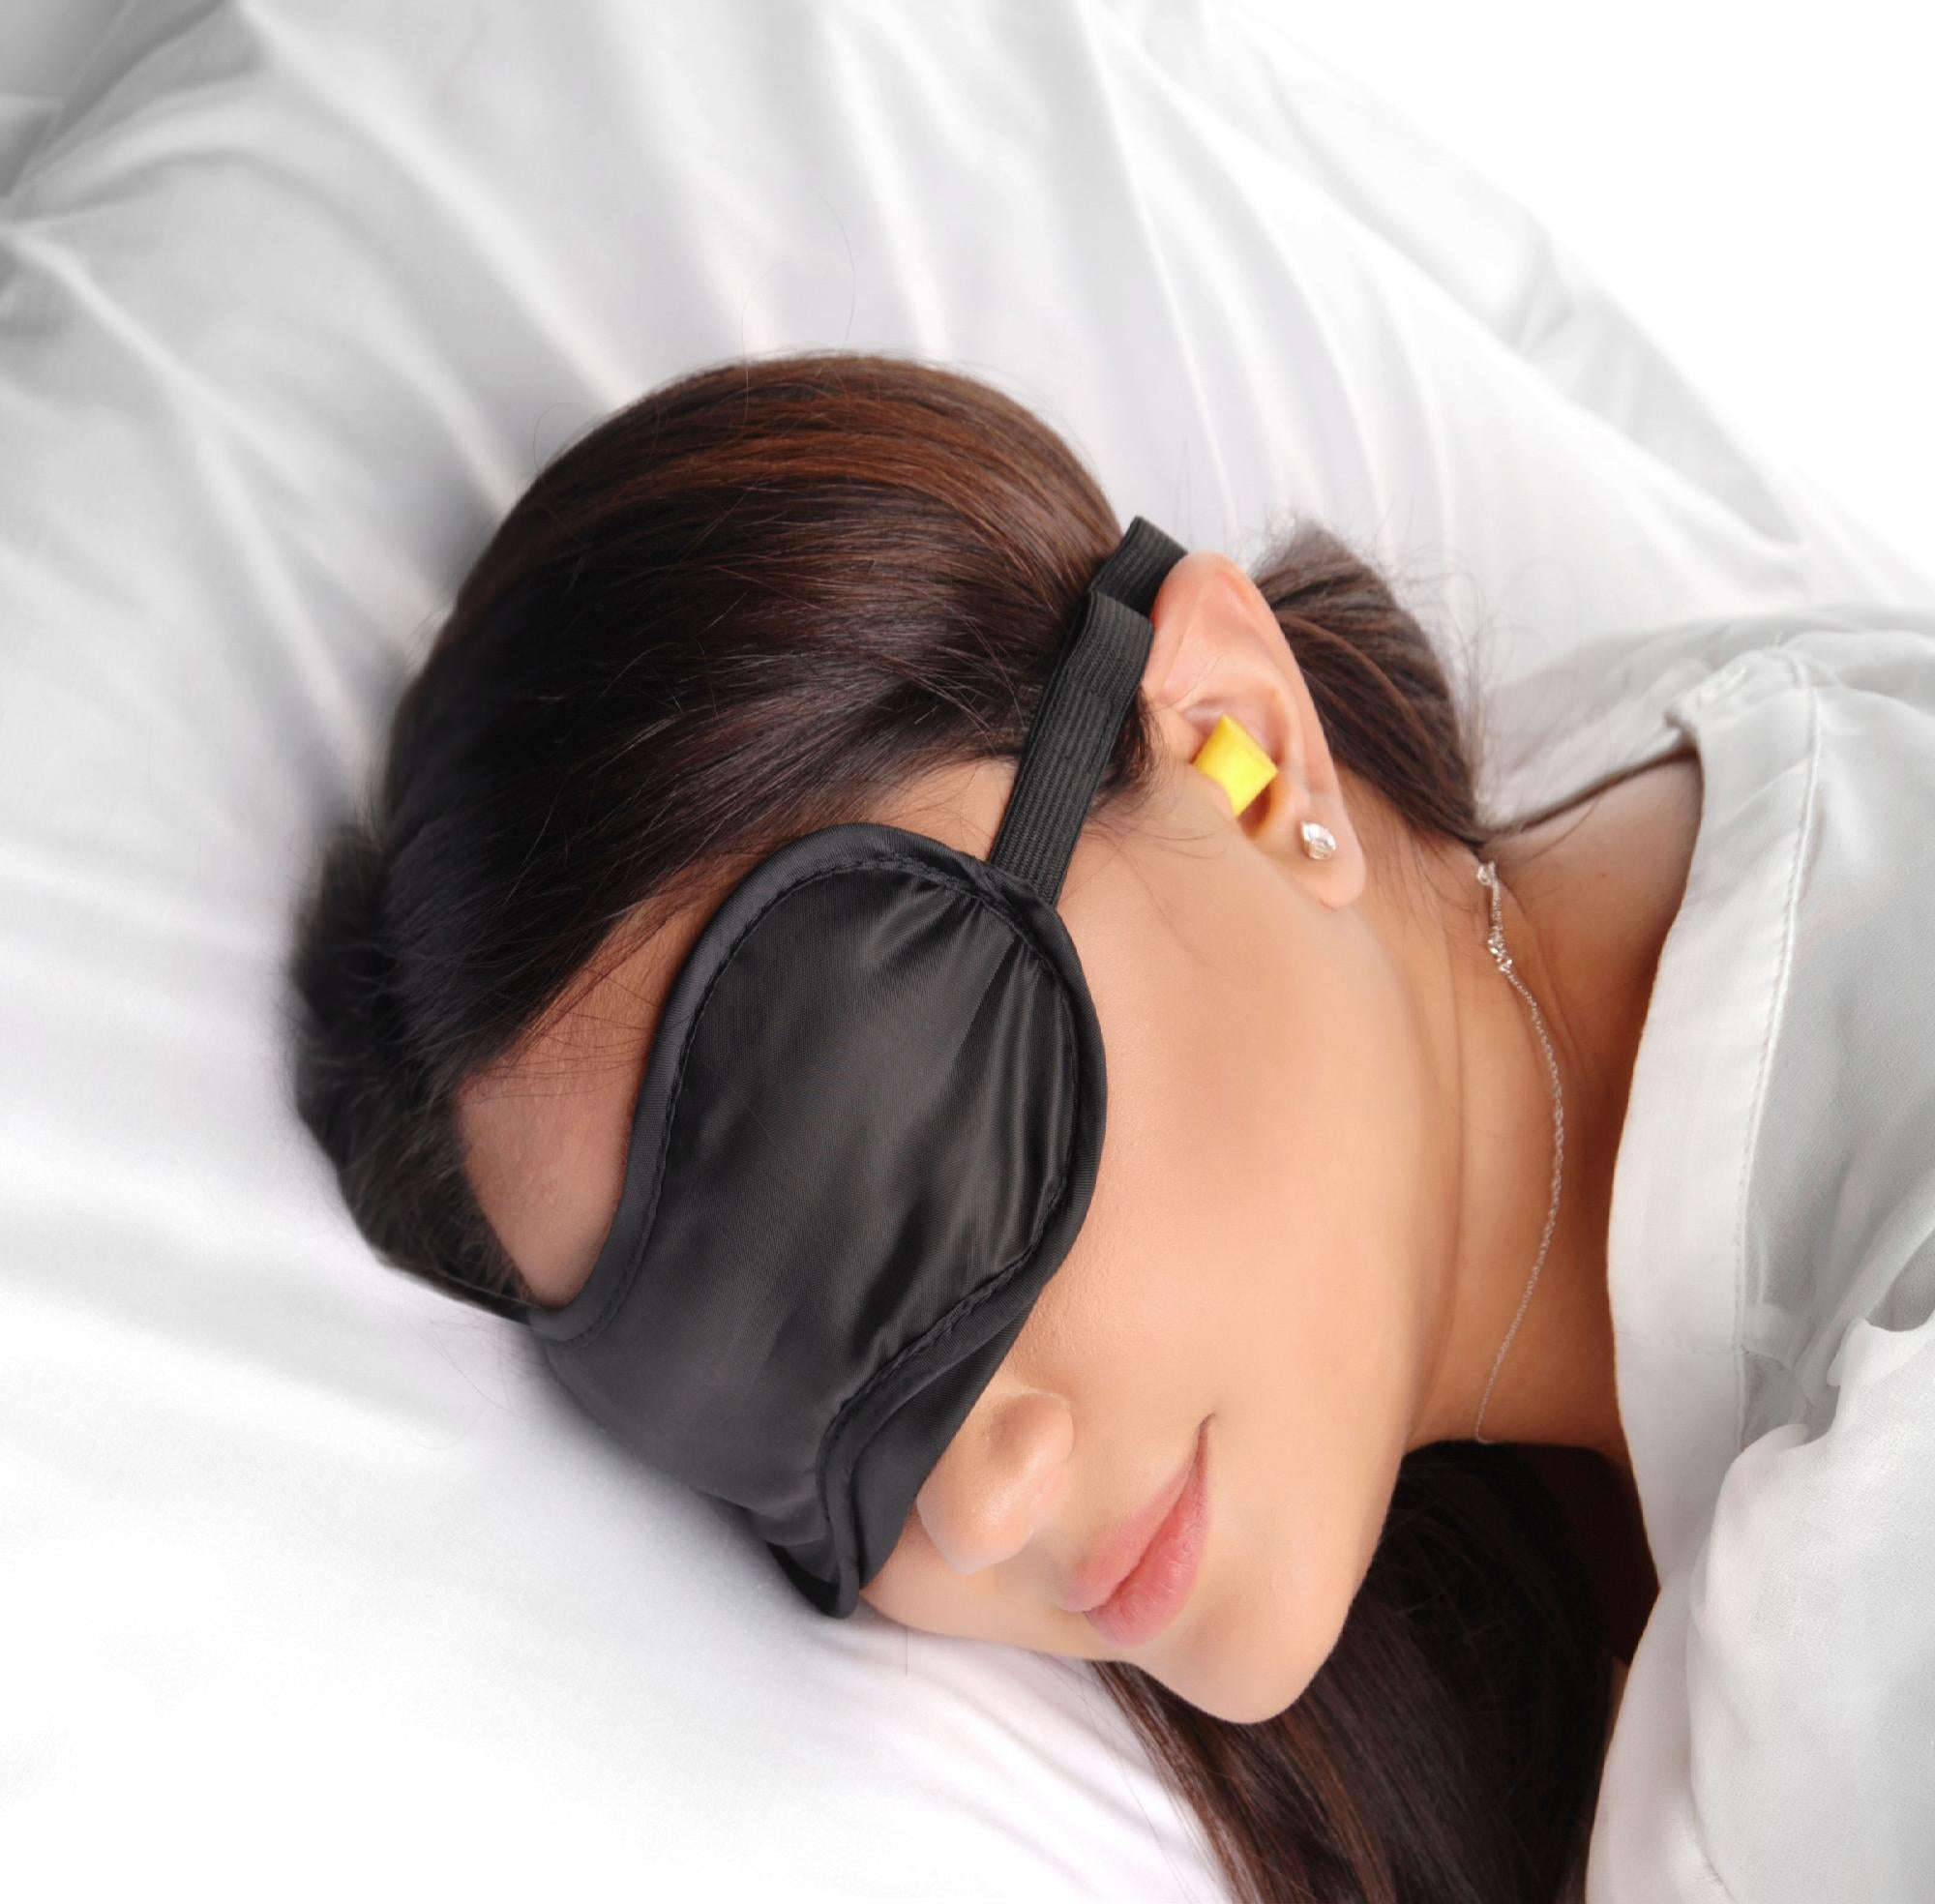 Beginner Sensory Deprivation Blindfold with Ear Plugs